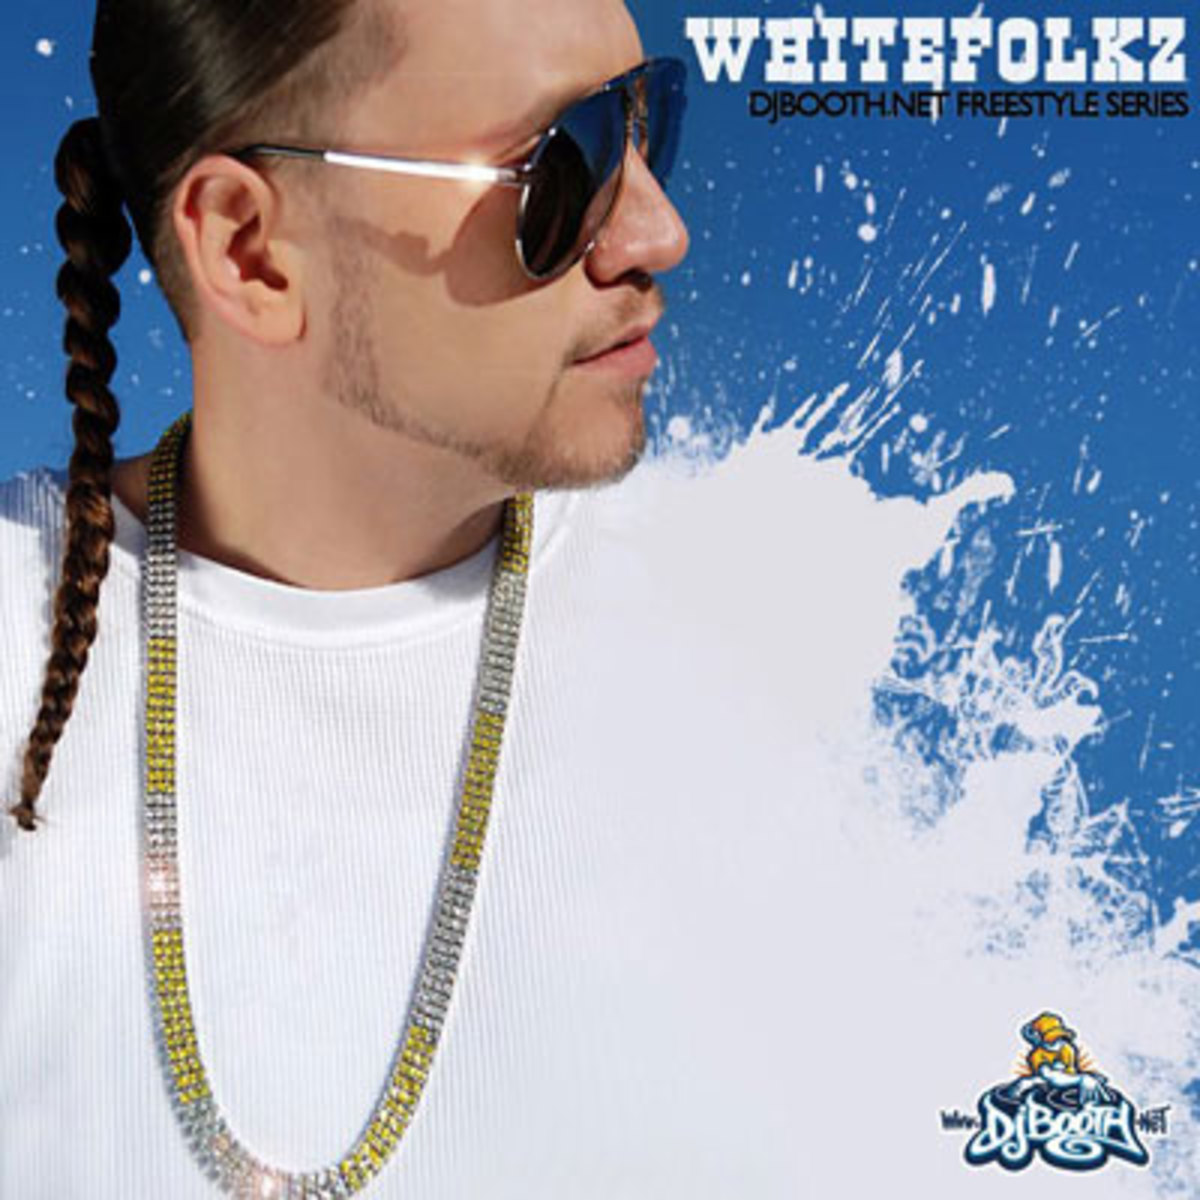 whitefolkz-freestyle.jpg